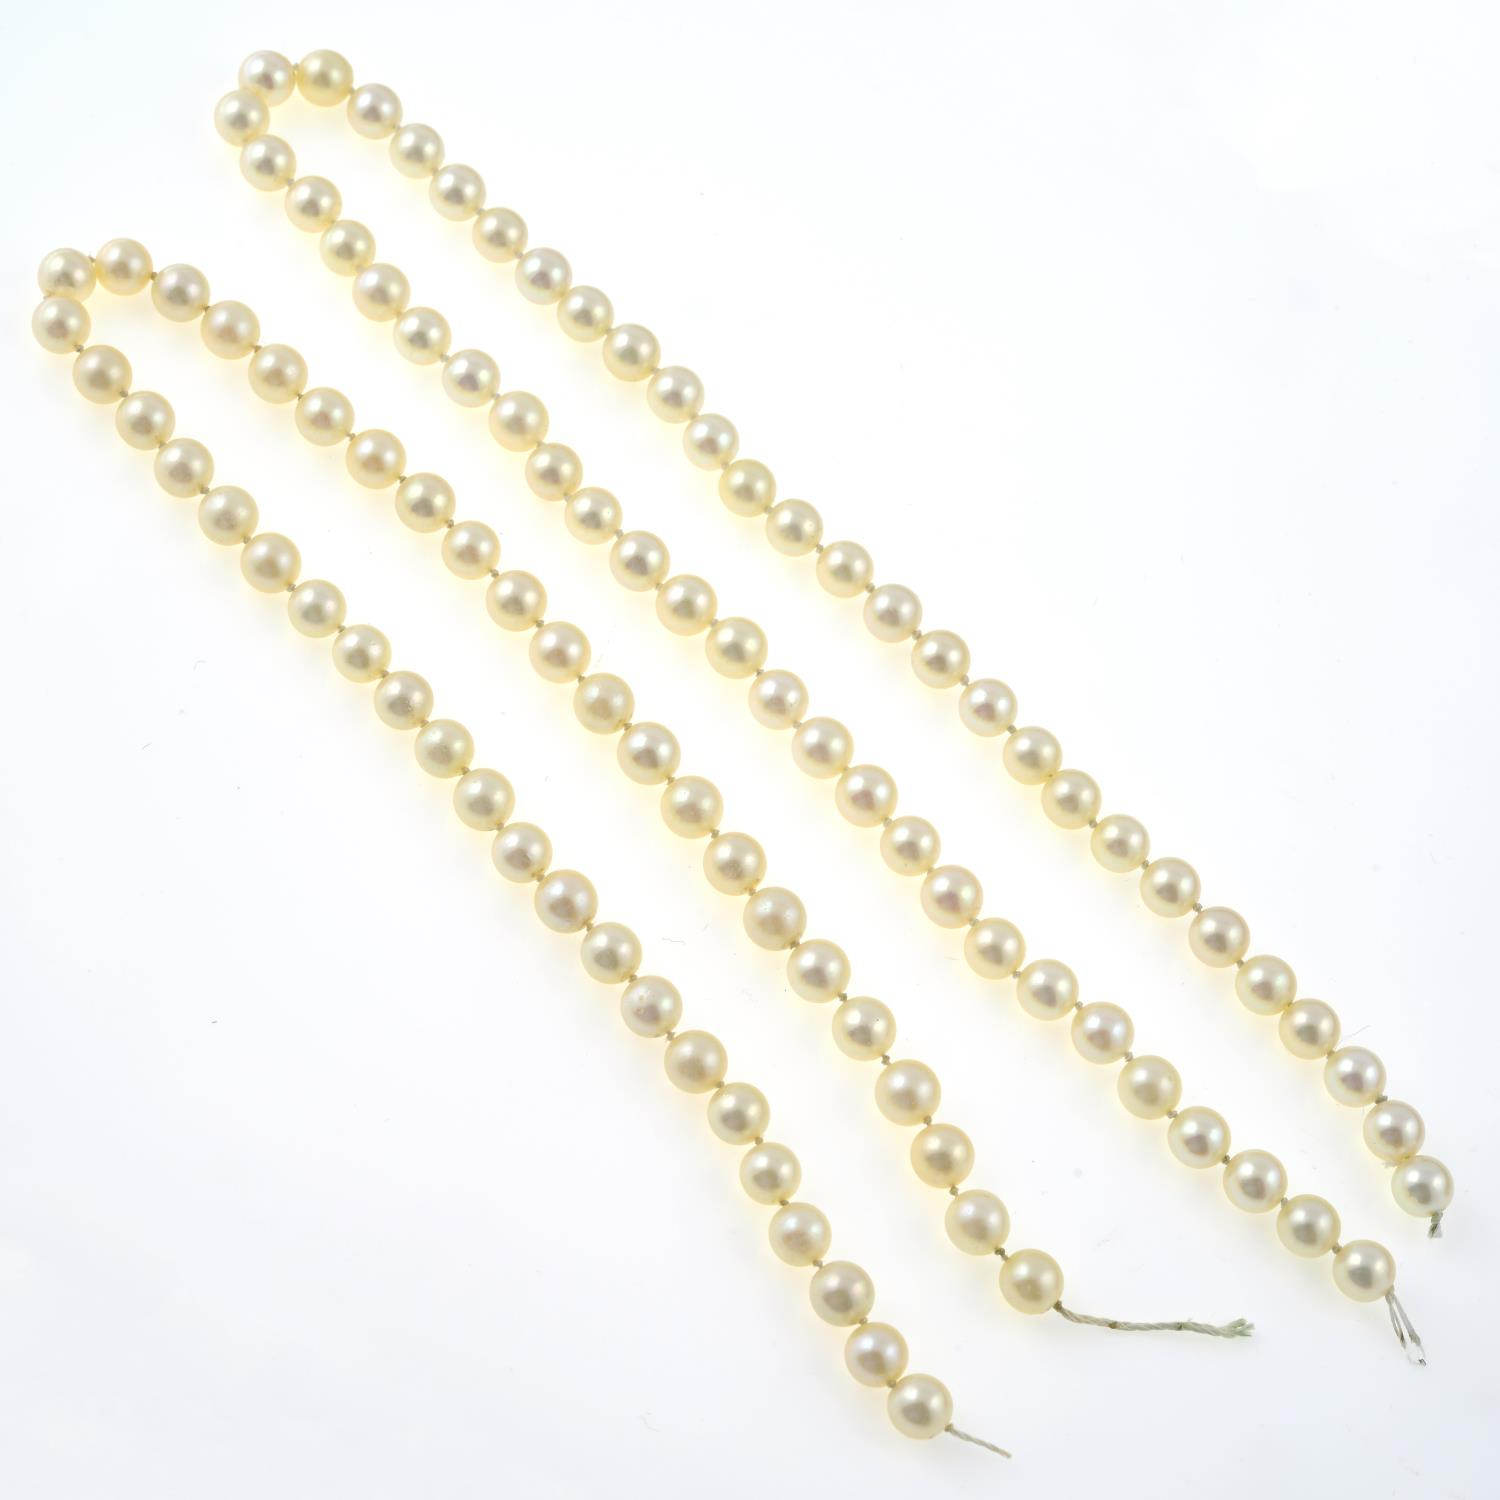 Selection of cultured pearls, - Image 2 of 3